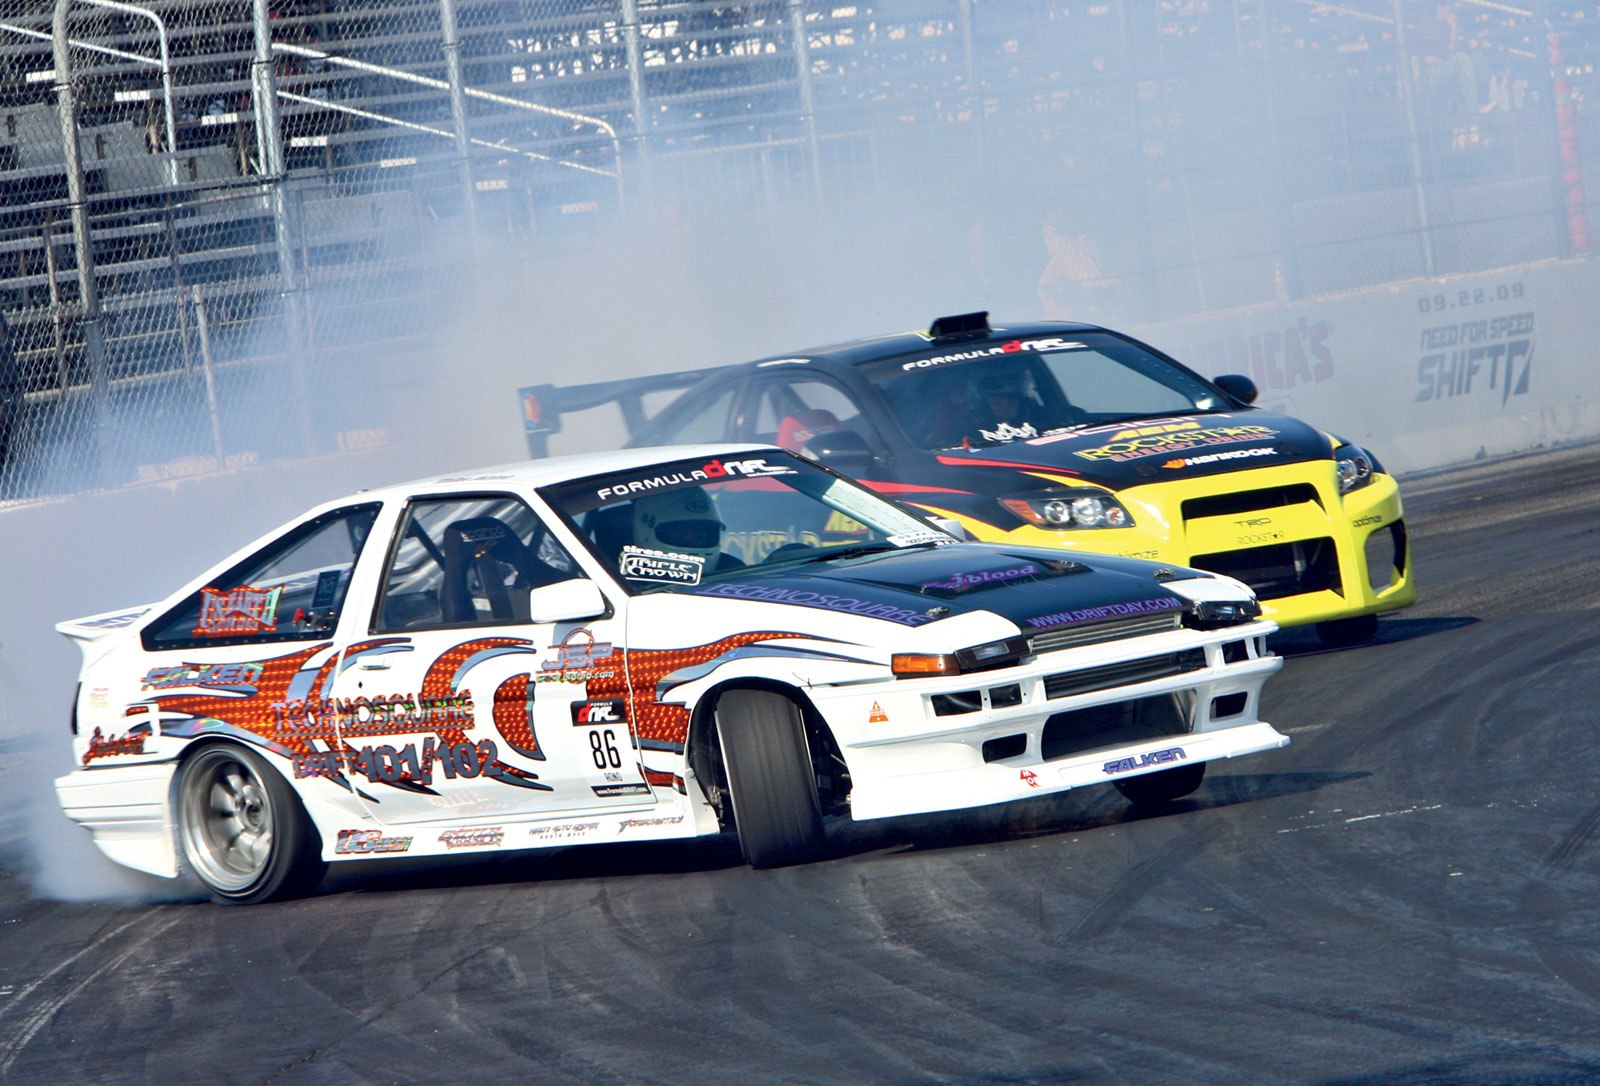 Best Drift Car Images On Pinterest Drifting Cars The O Jays